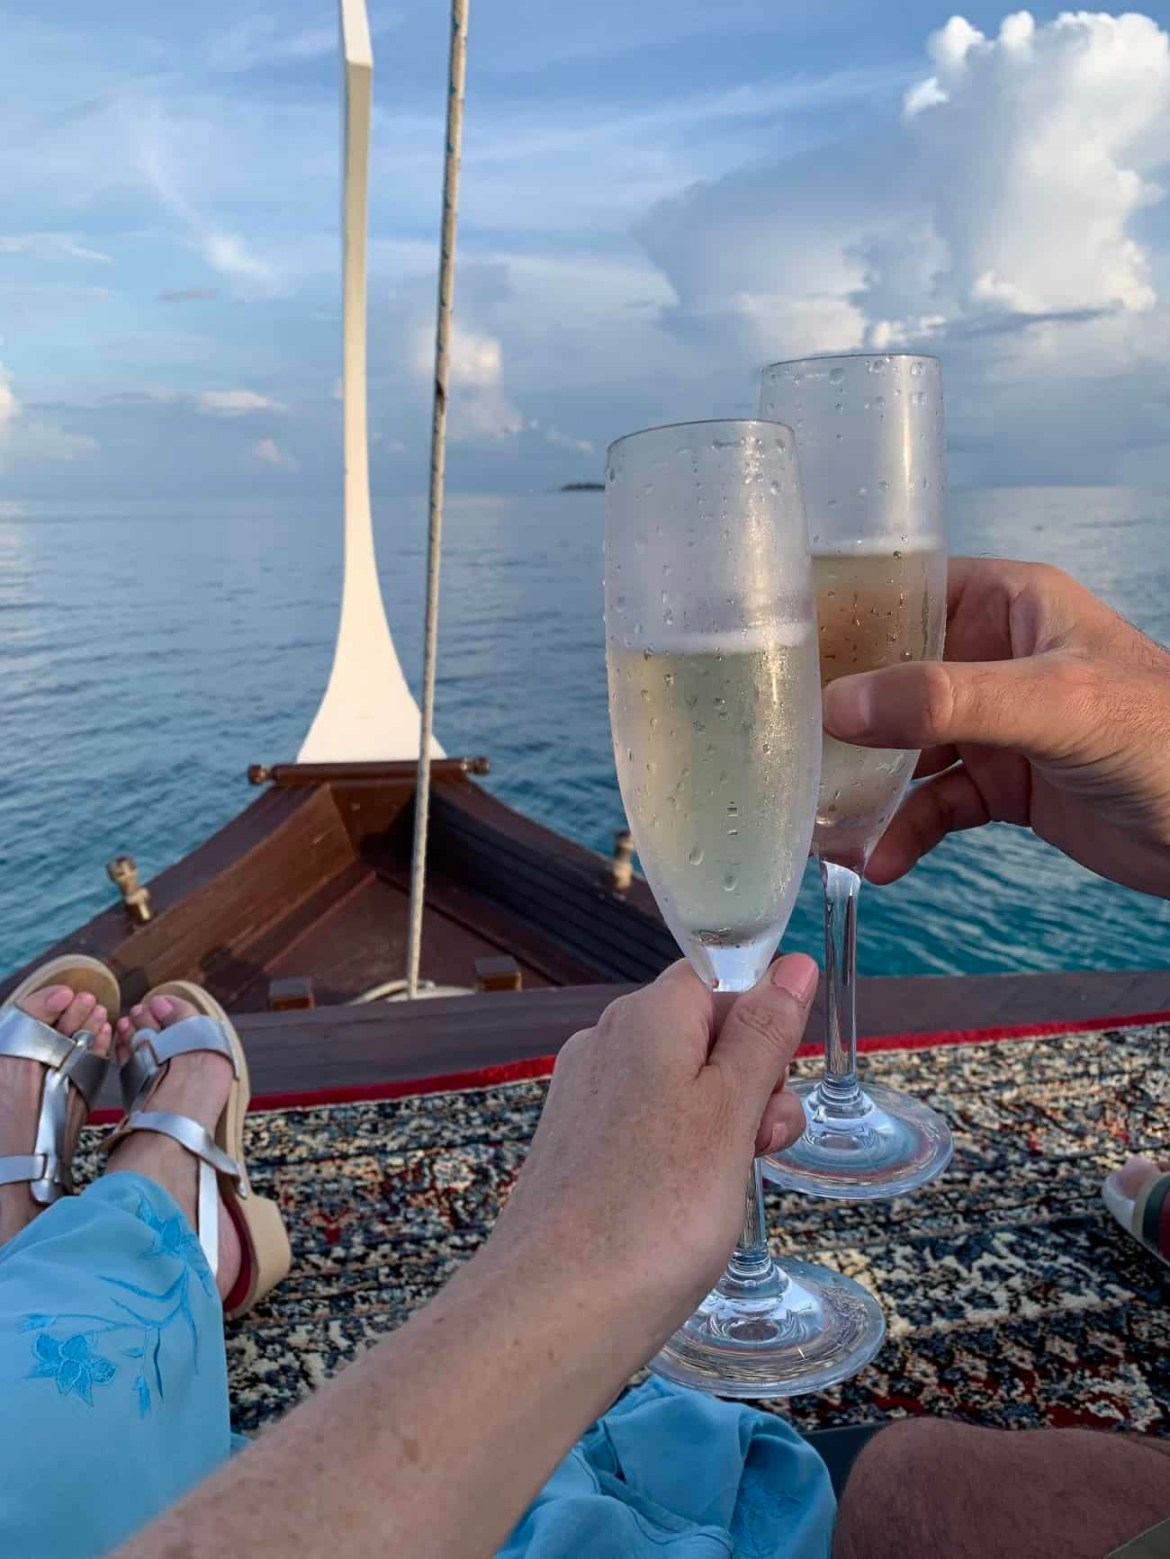 Sunset champagne cruise at Reethi Rah